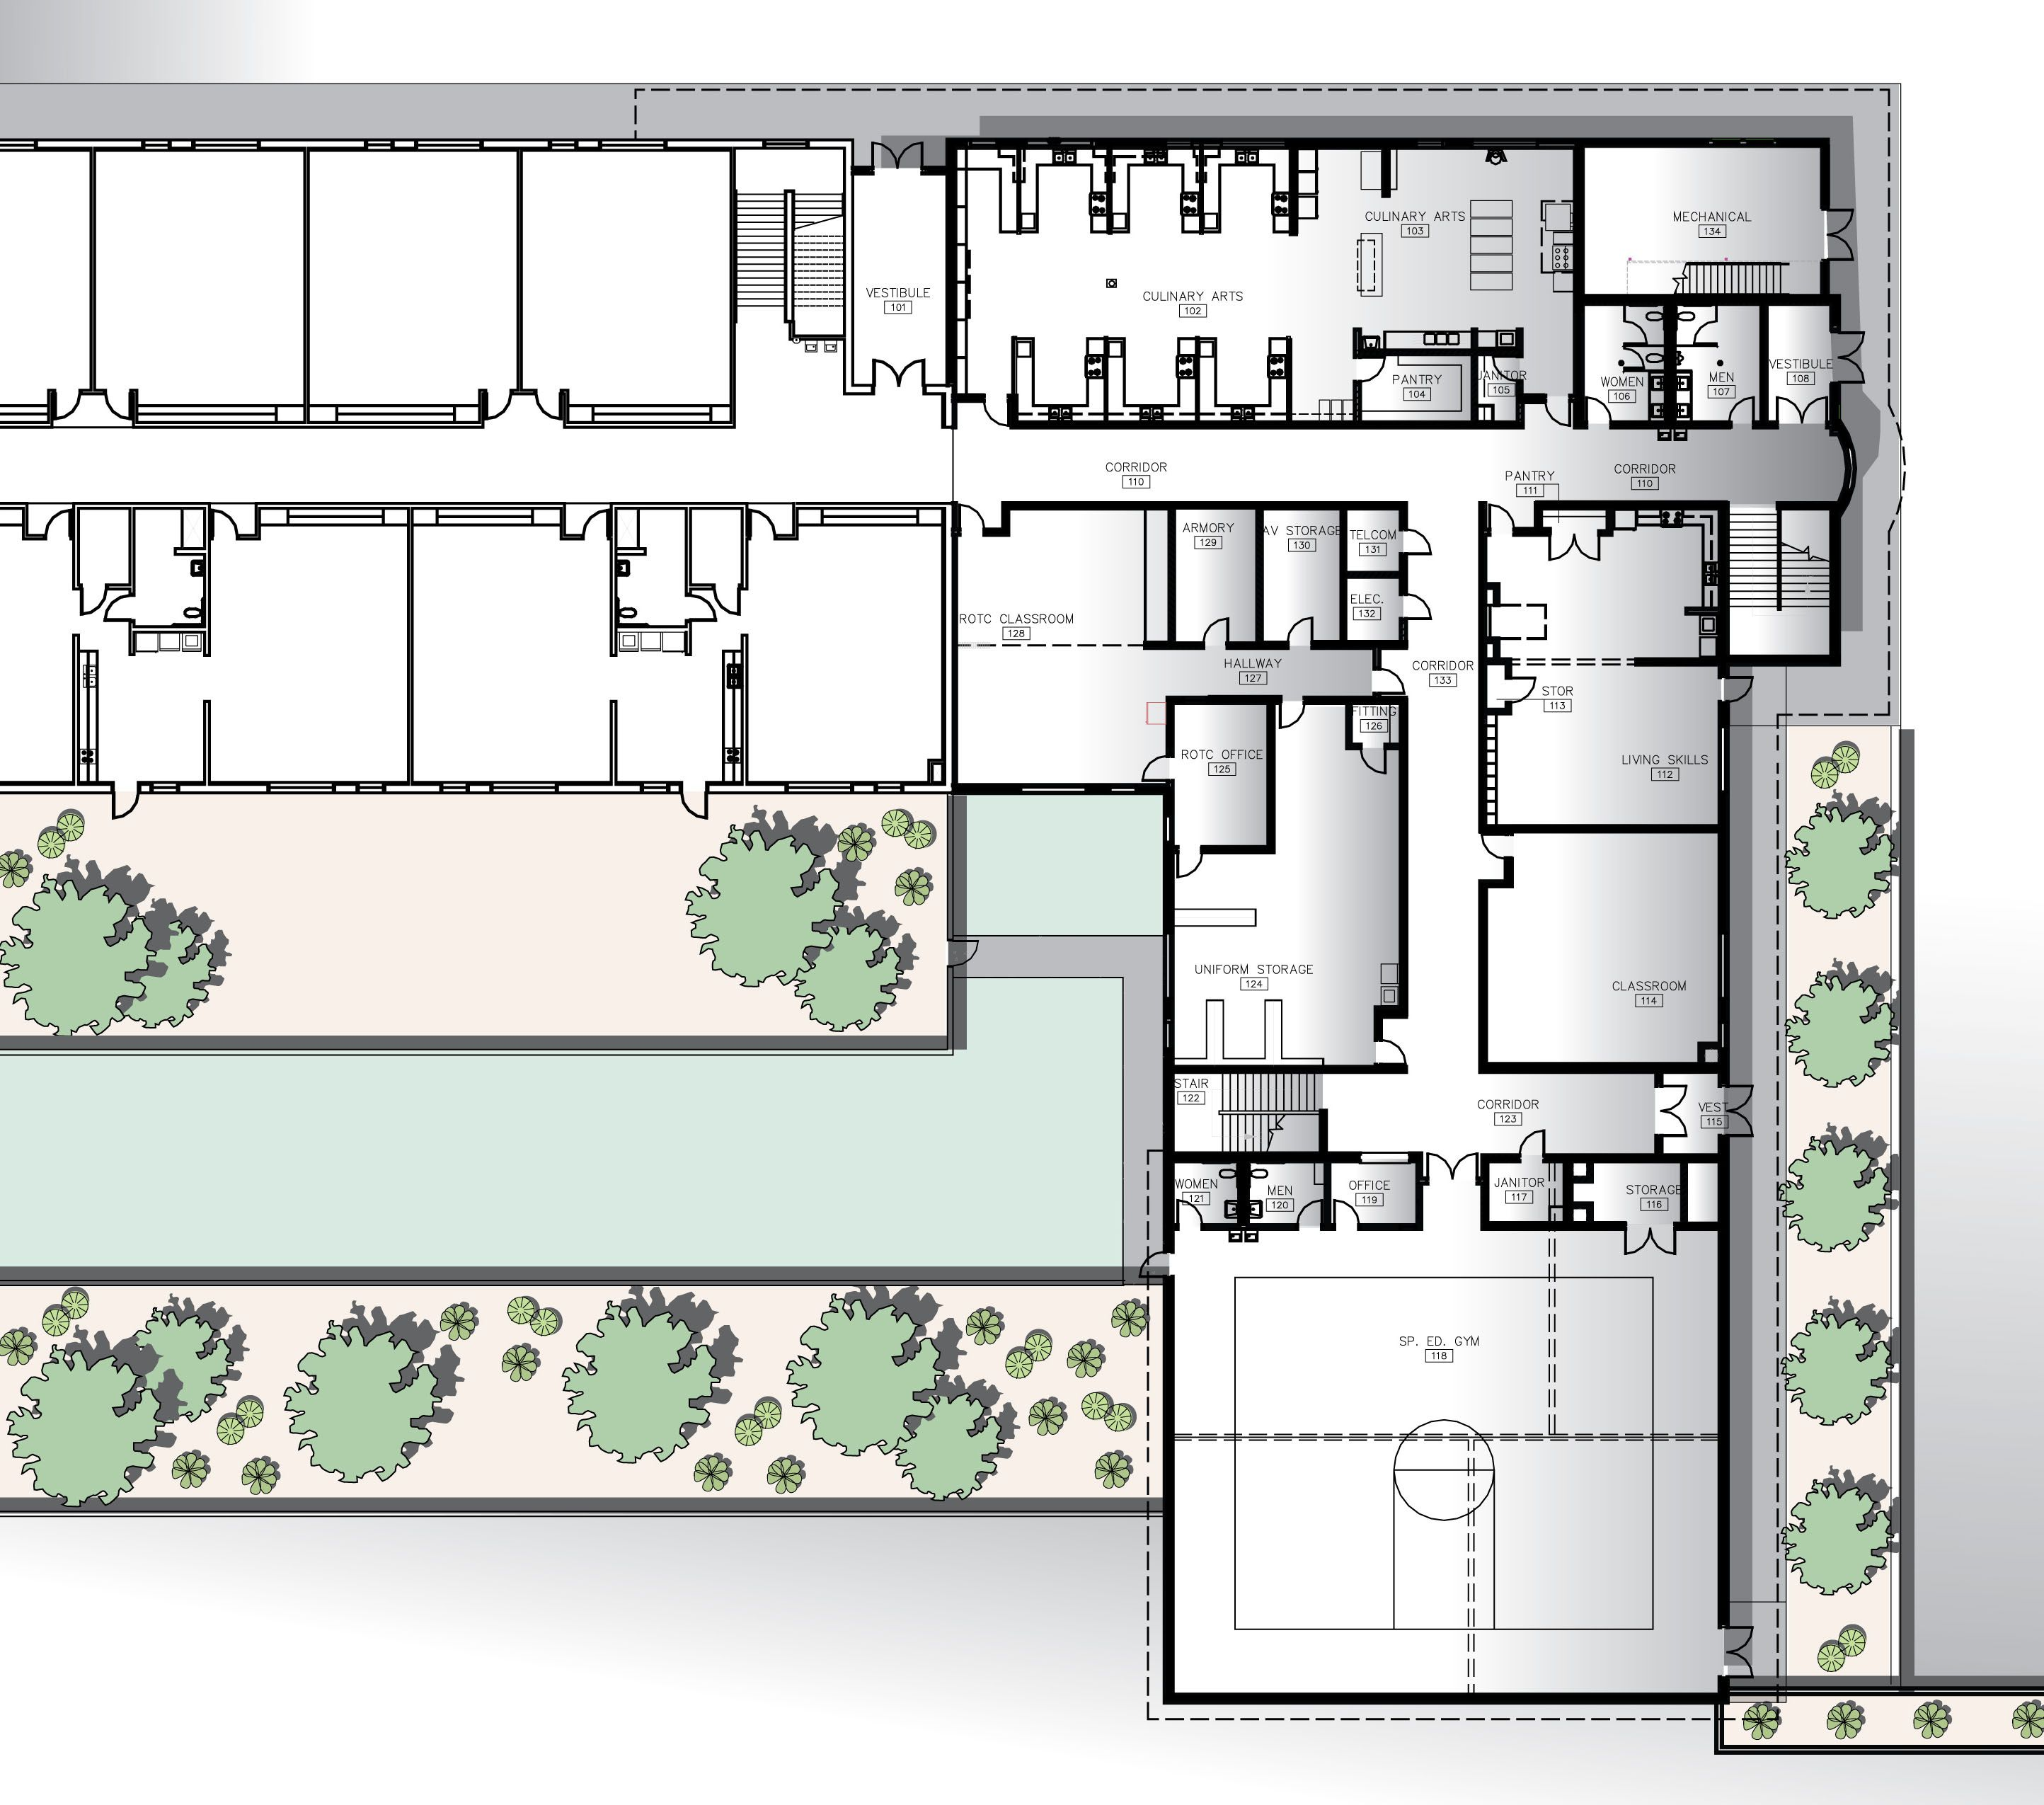 High school floor plans high school floor plan free for Architectural floor plan software